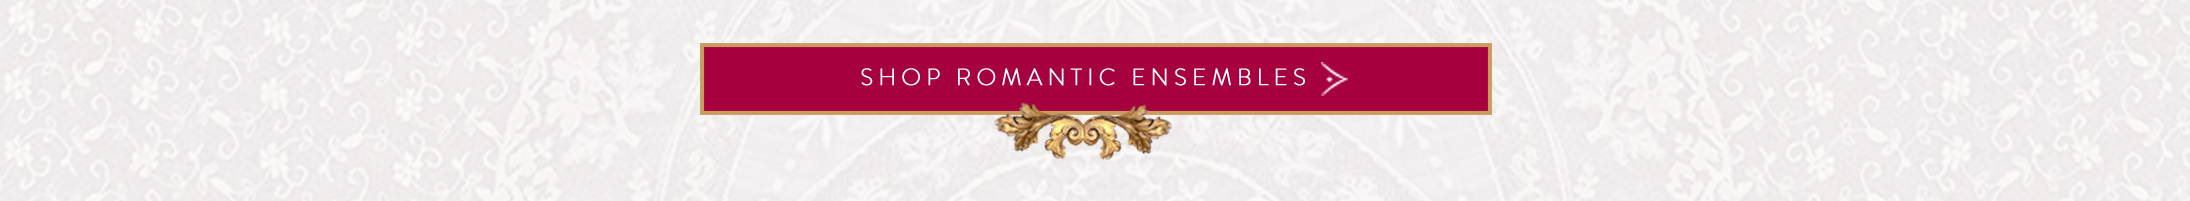 Shop Romantic Ensembles